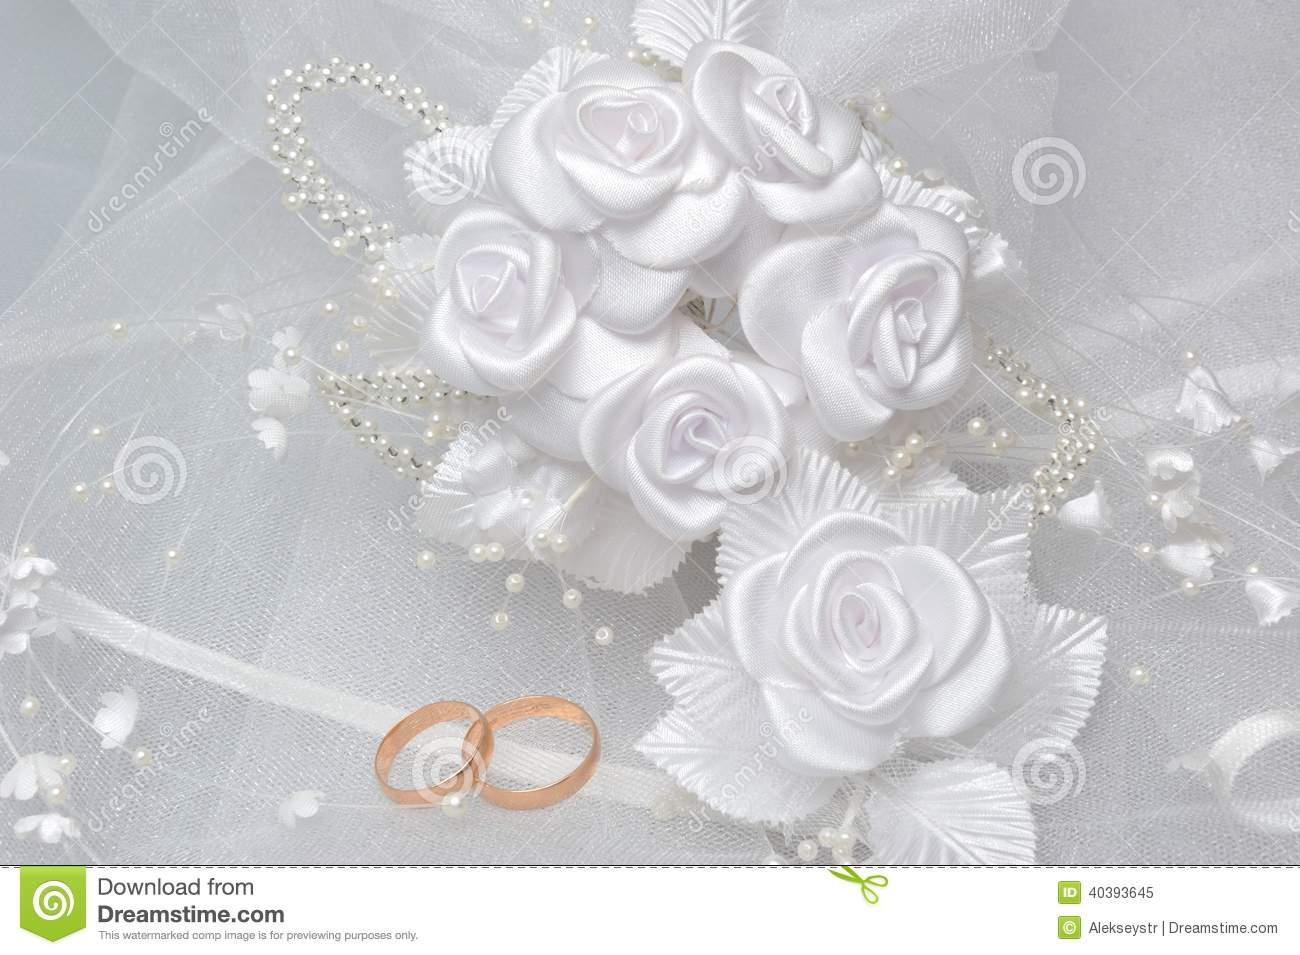 Wedding Rings On Bridal Veil With White Boutonniere On